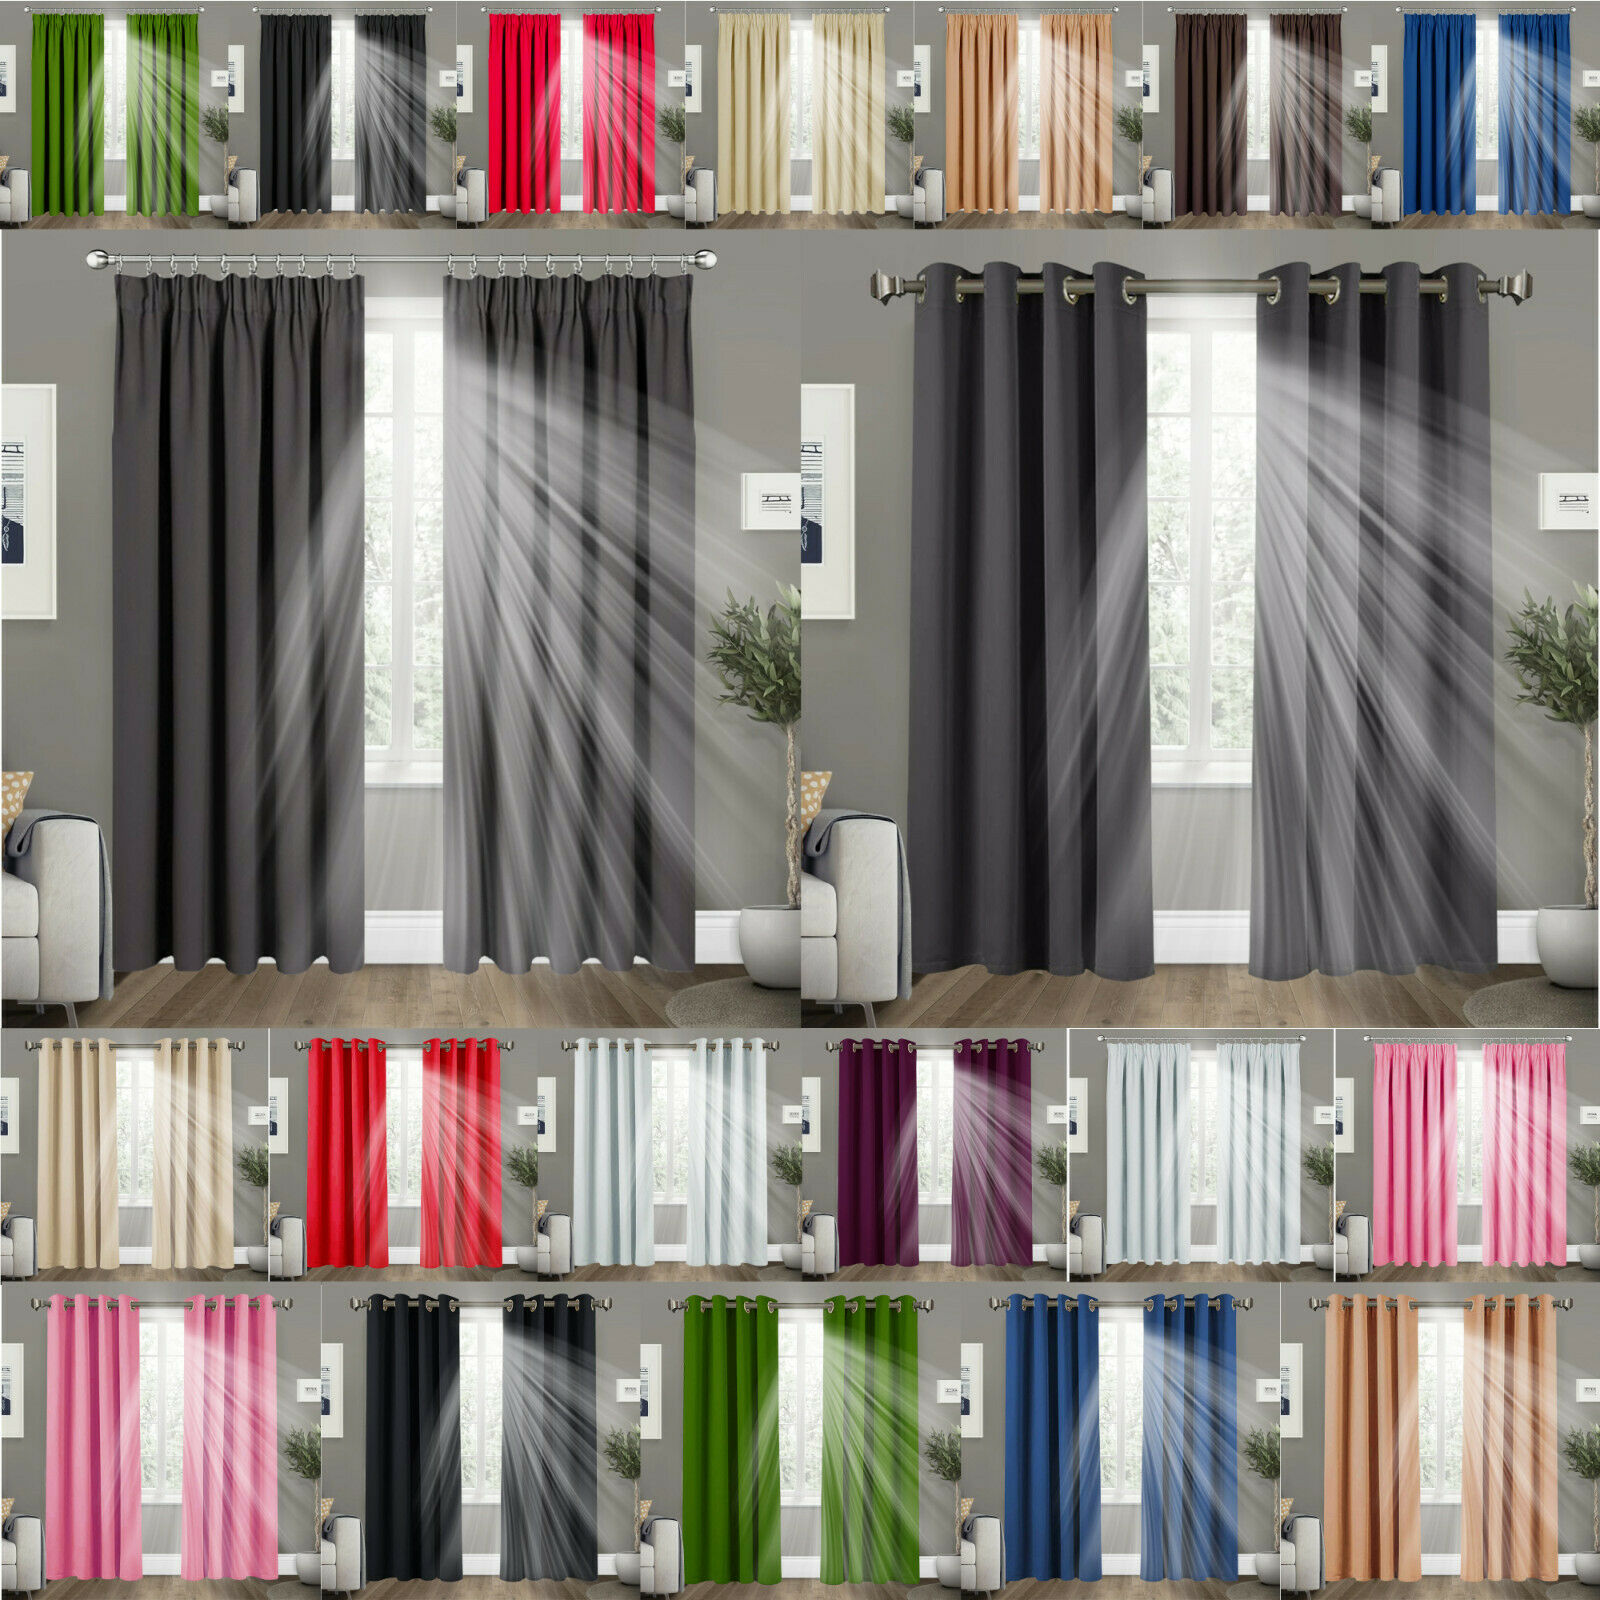 THERMAL BLACKOUT CURTAINS Eyelet / Ring Top OR Pencil Pleat with FREE Tie Backs